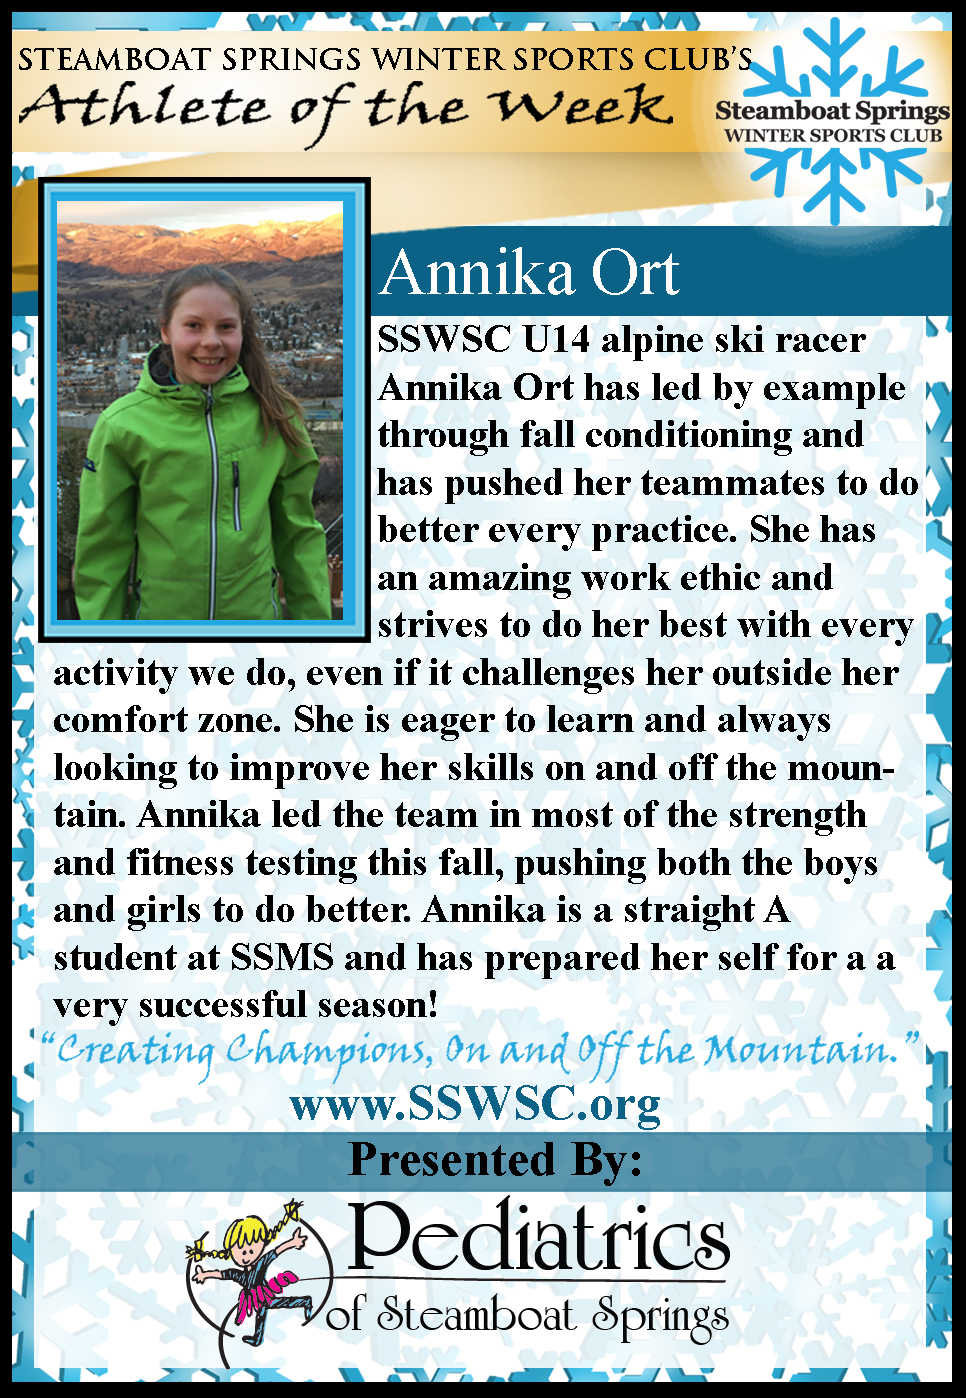 Athlete of the Week Annika Ort